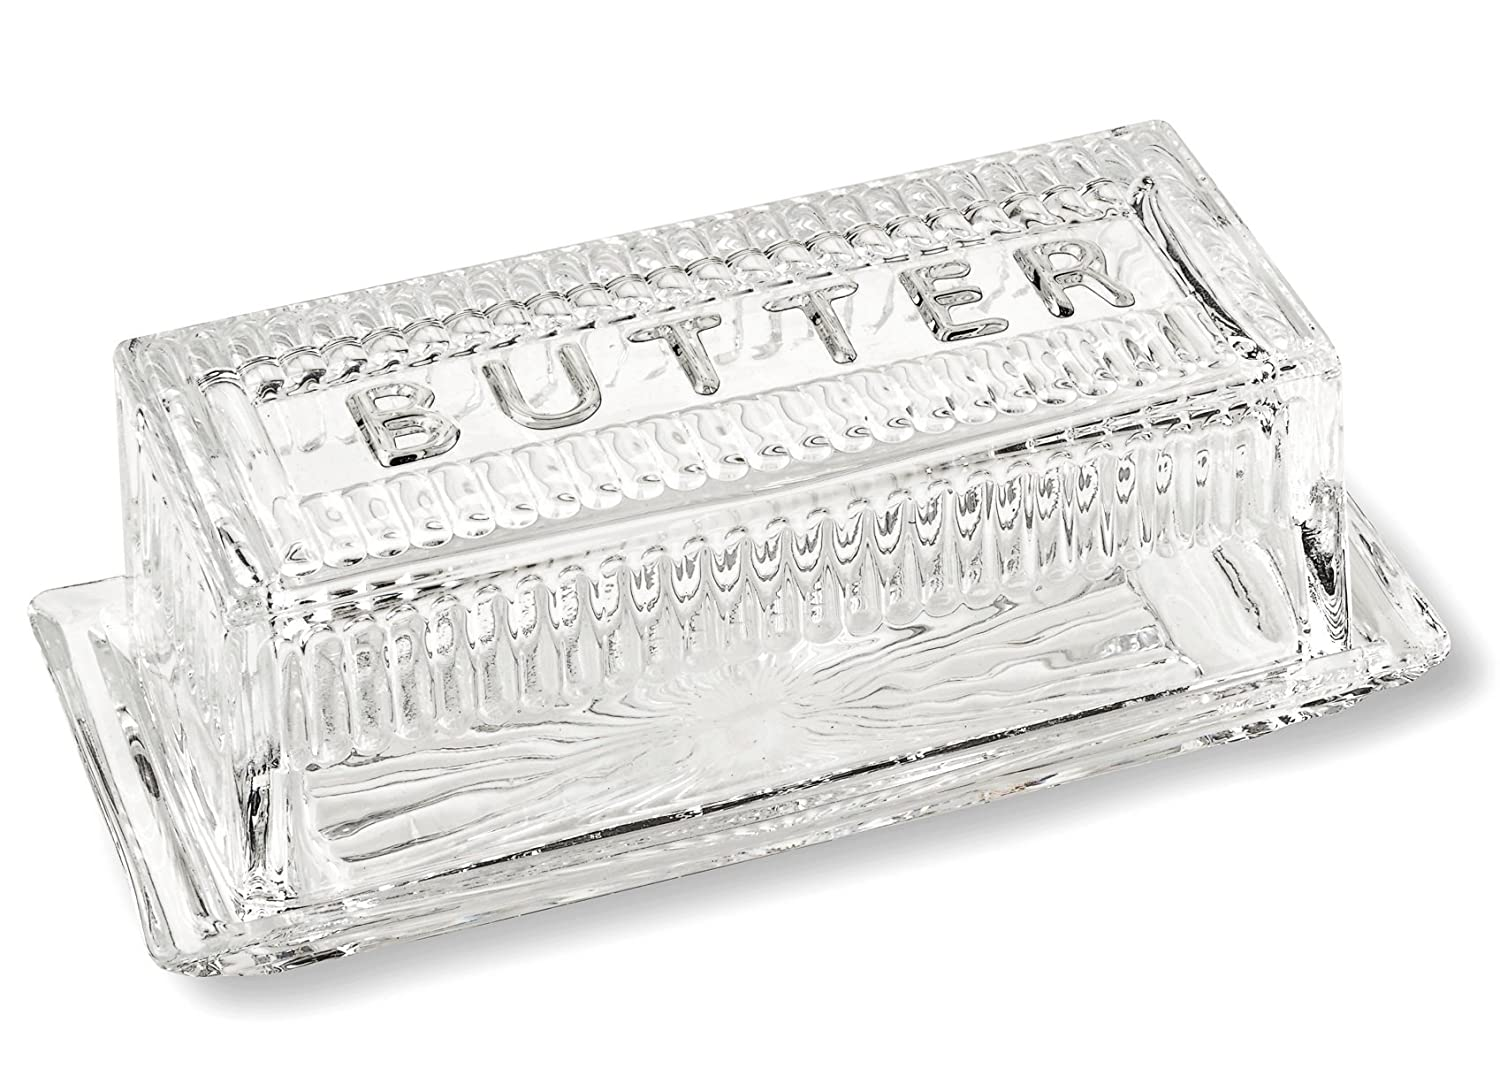 Bezrat Lead-Free Crystal Covered Modern French Butter Dish With Lid BT406